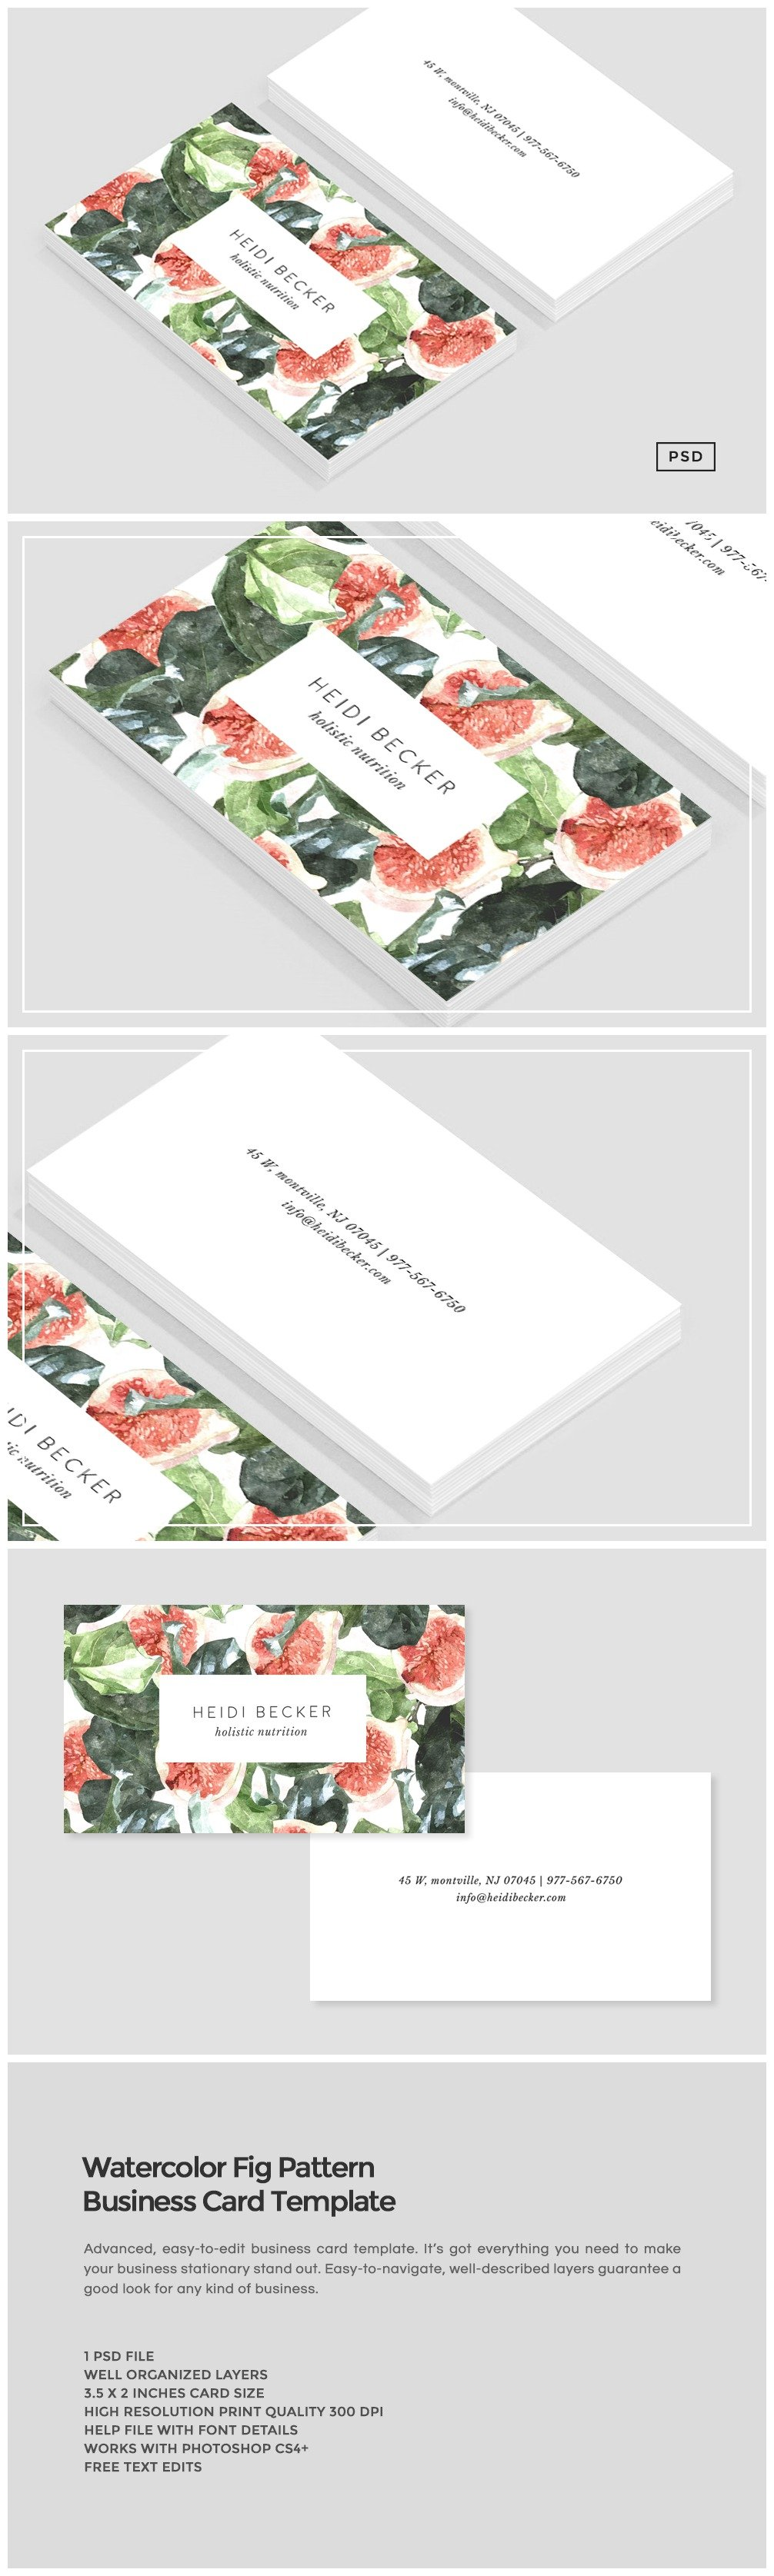 Watercolor fig pattern business card business card templates watercolor fig pattern business card business card templates creative market reheart Gallery